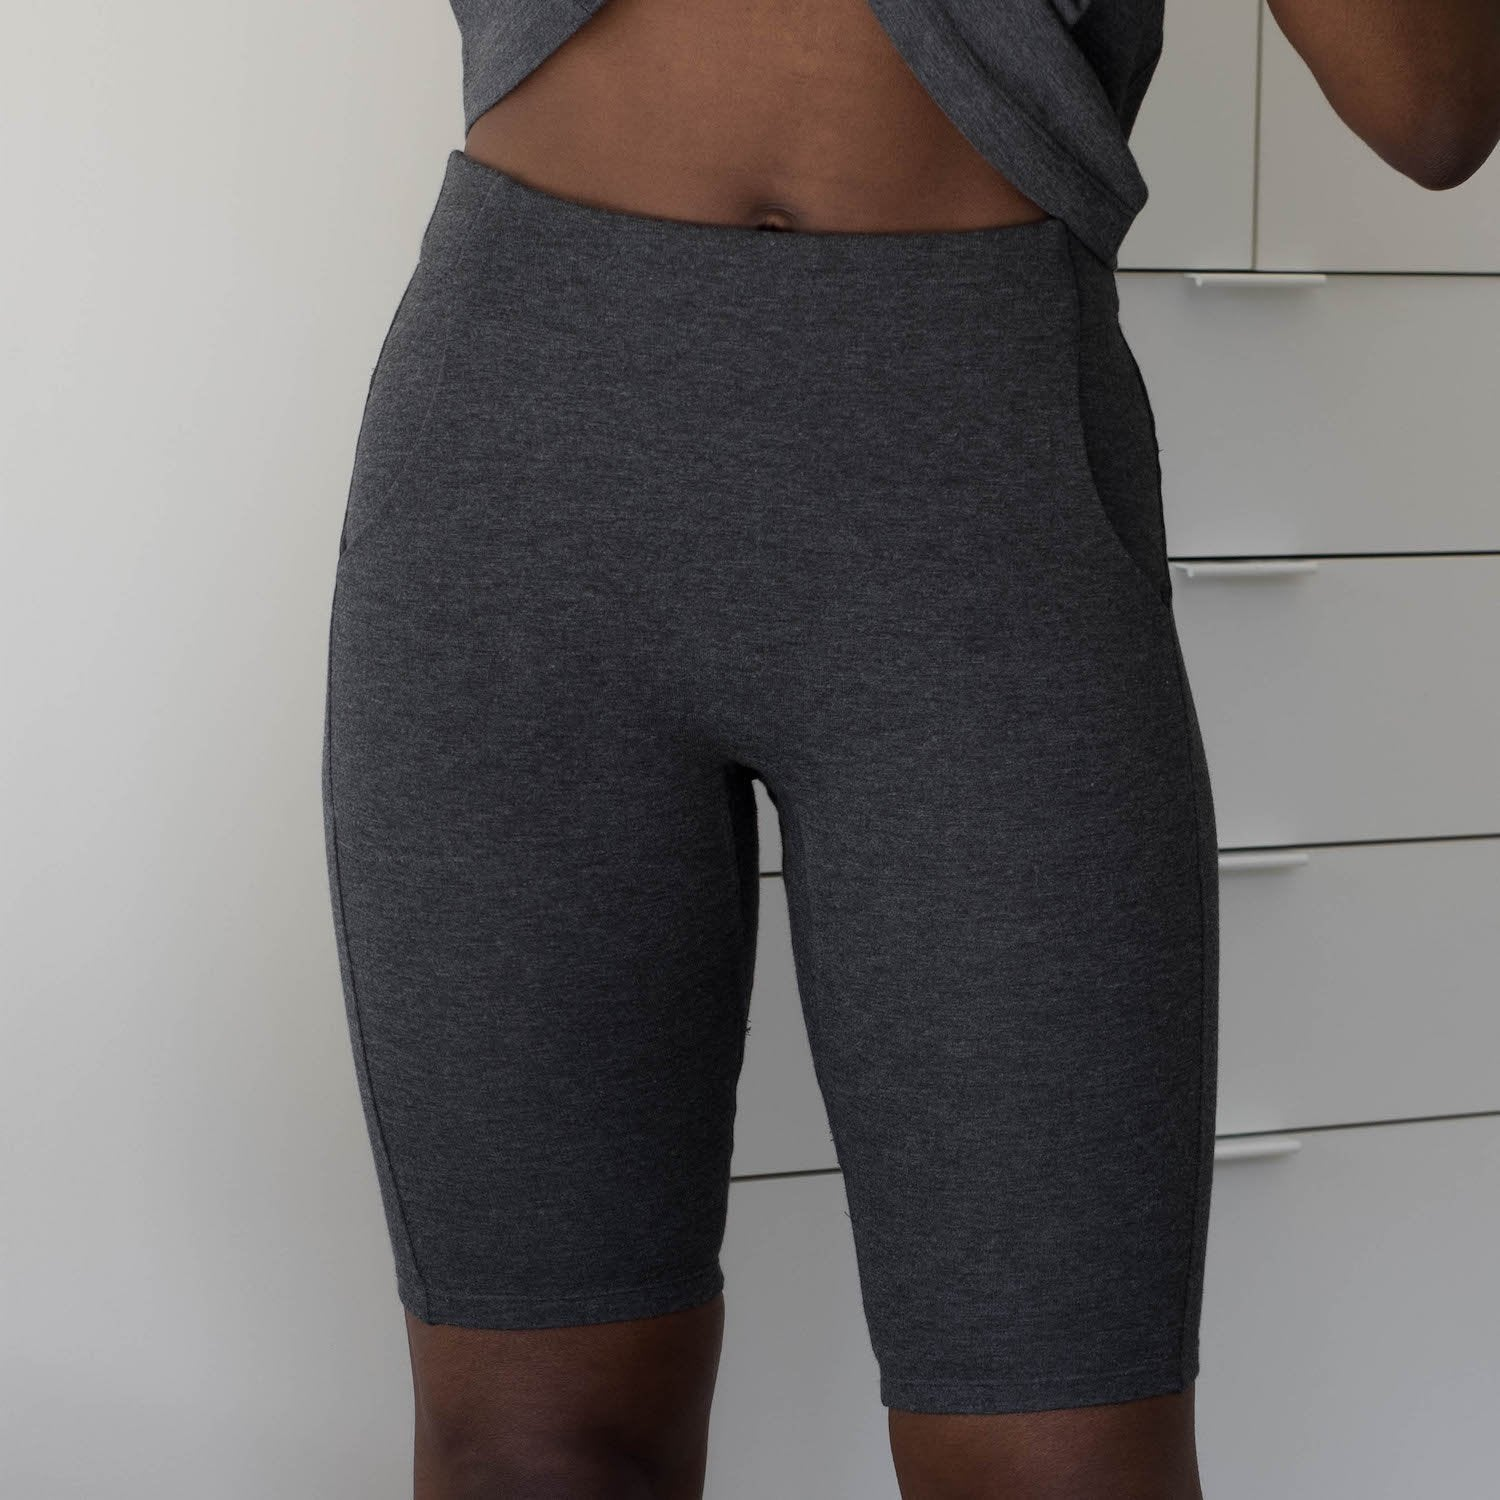 Lunya Sleepwear Restore Bike Short - #Charcoal